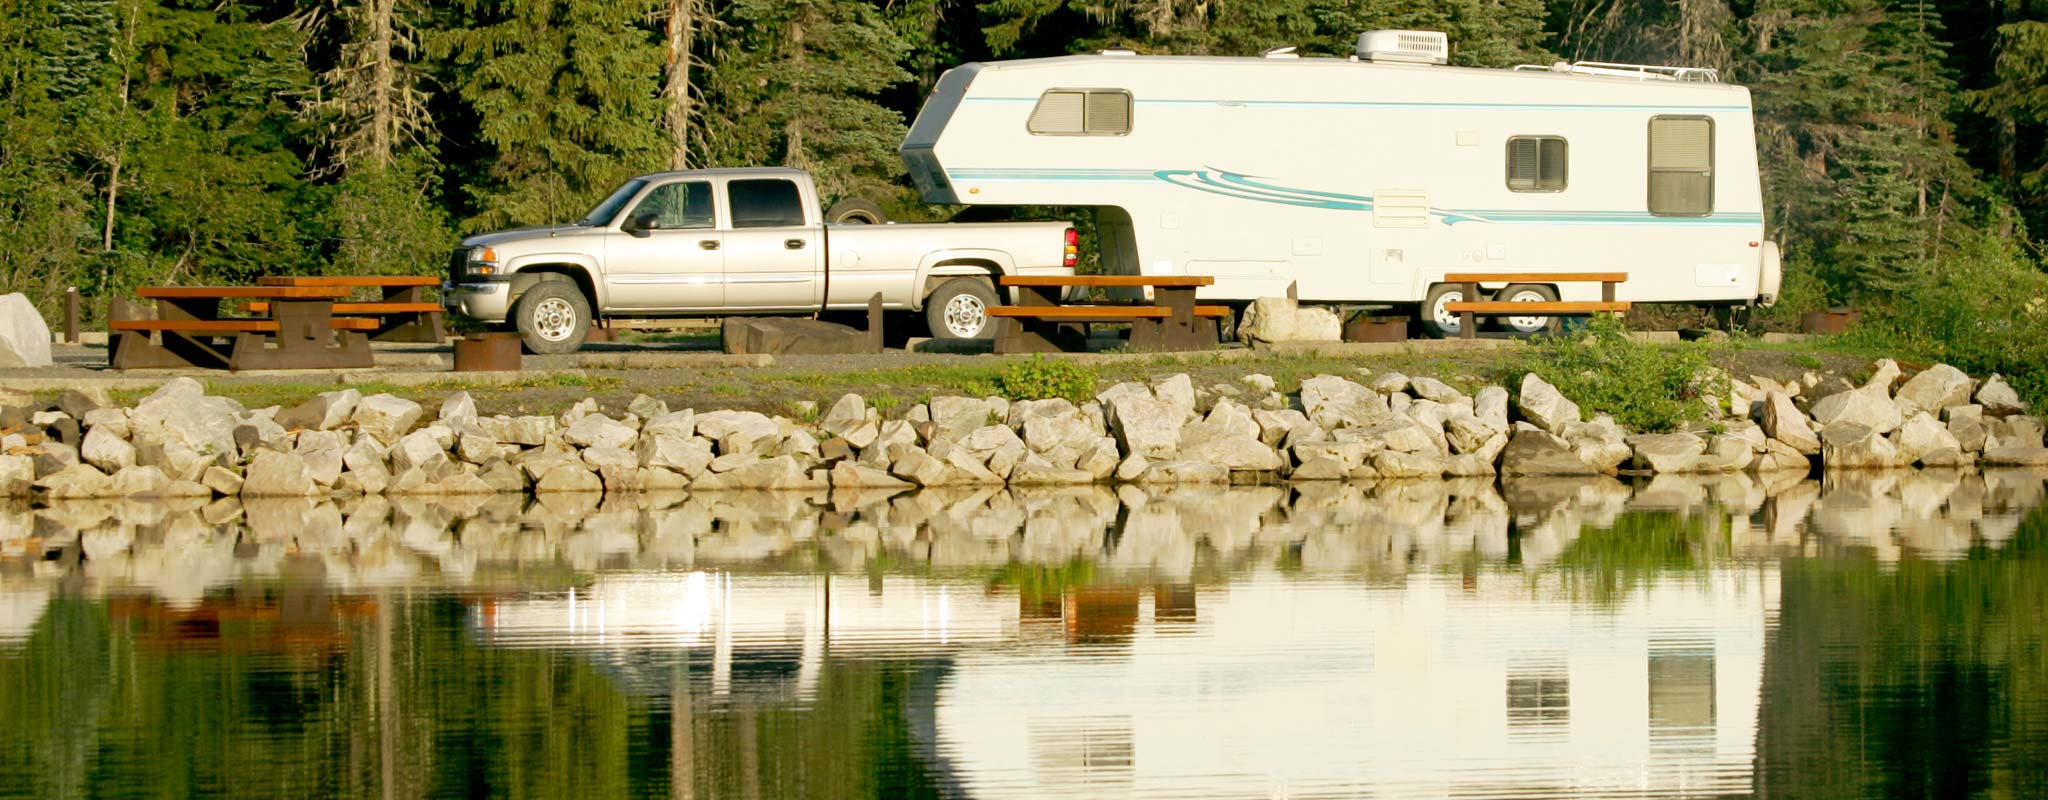 A pickup with a fifth wheel travel trailer parked in a campground next to a lake.